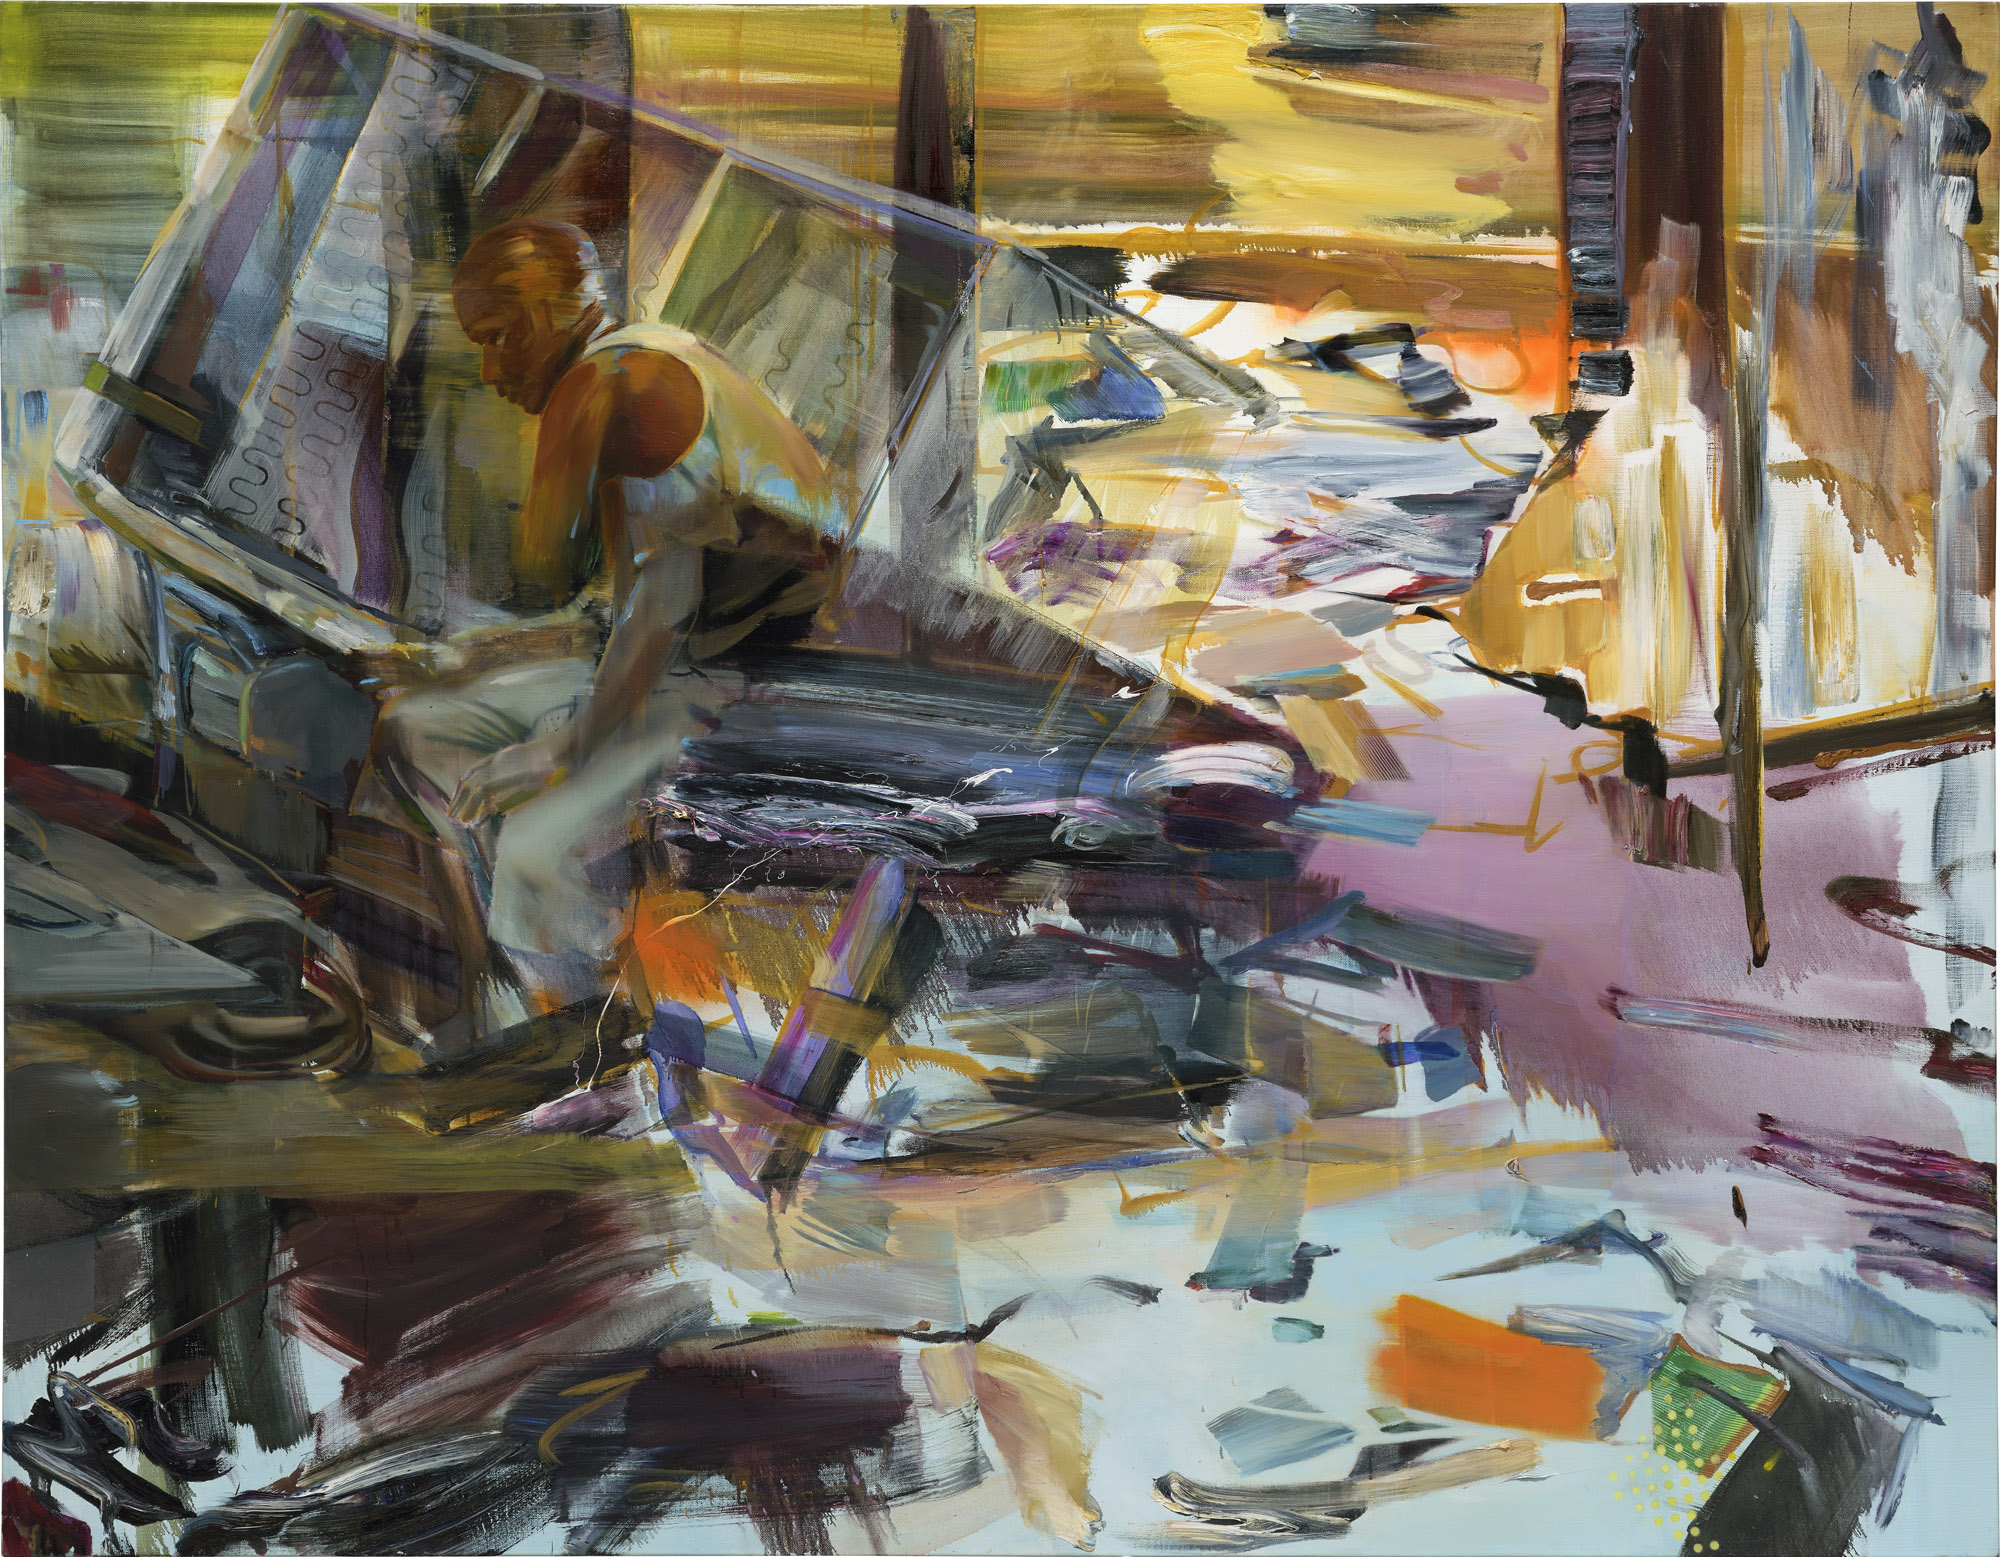 Chesterfield , 2013, oil and alkyd on canvas, 183 x 235cm